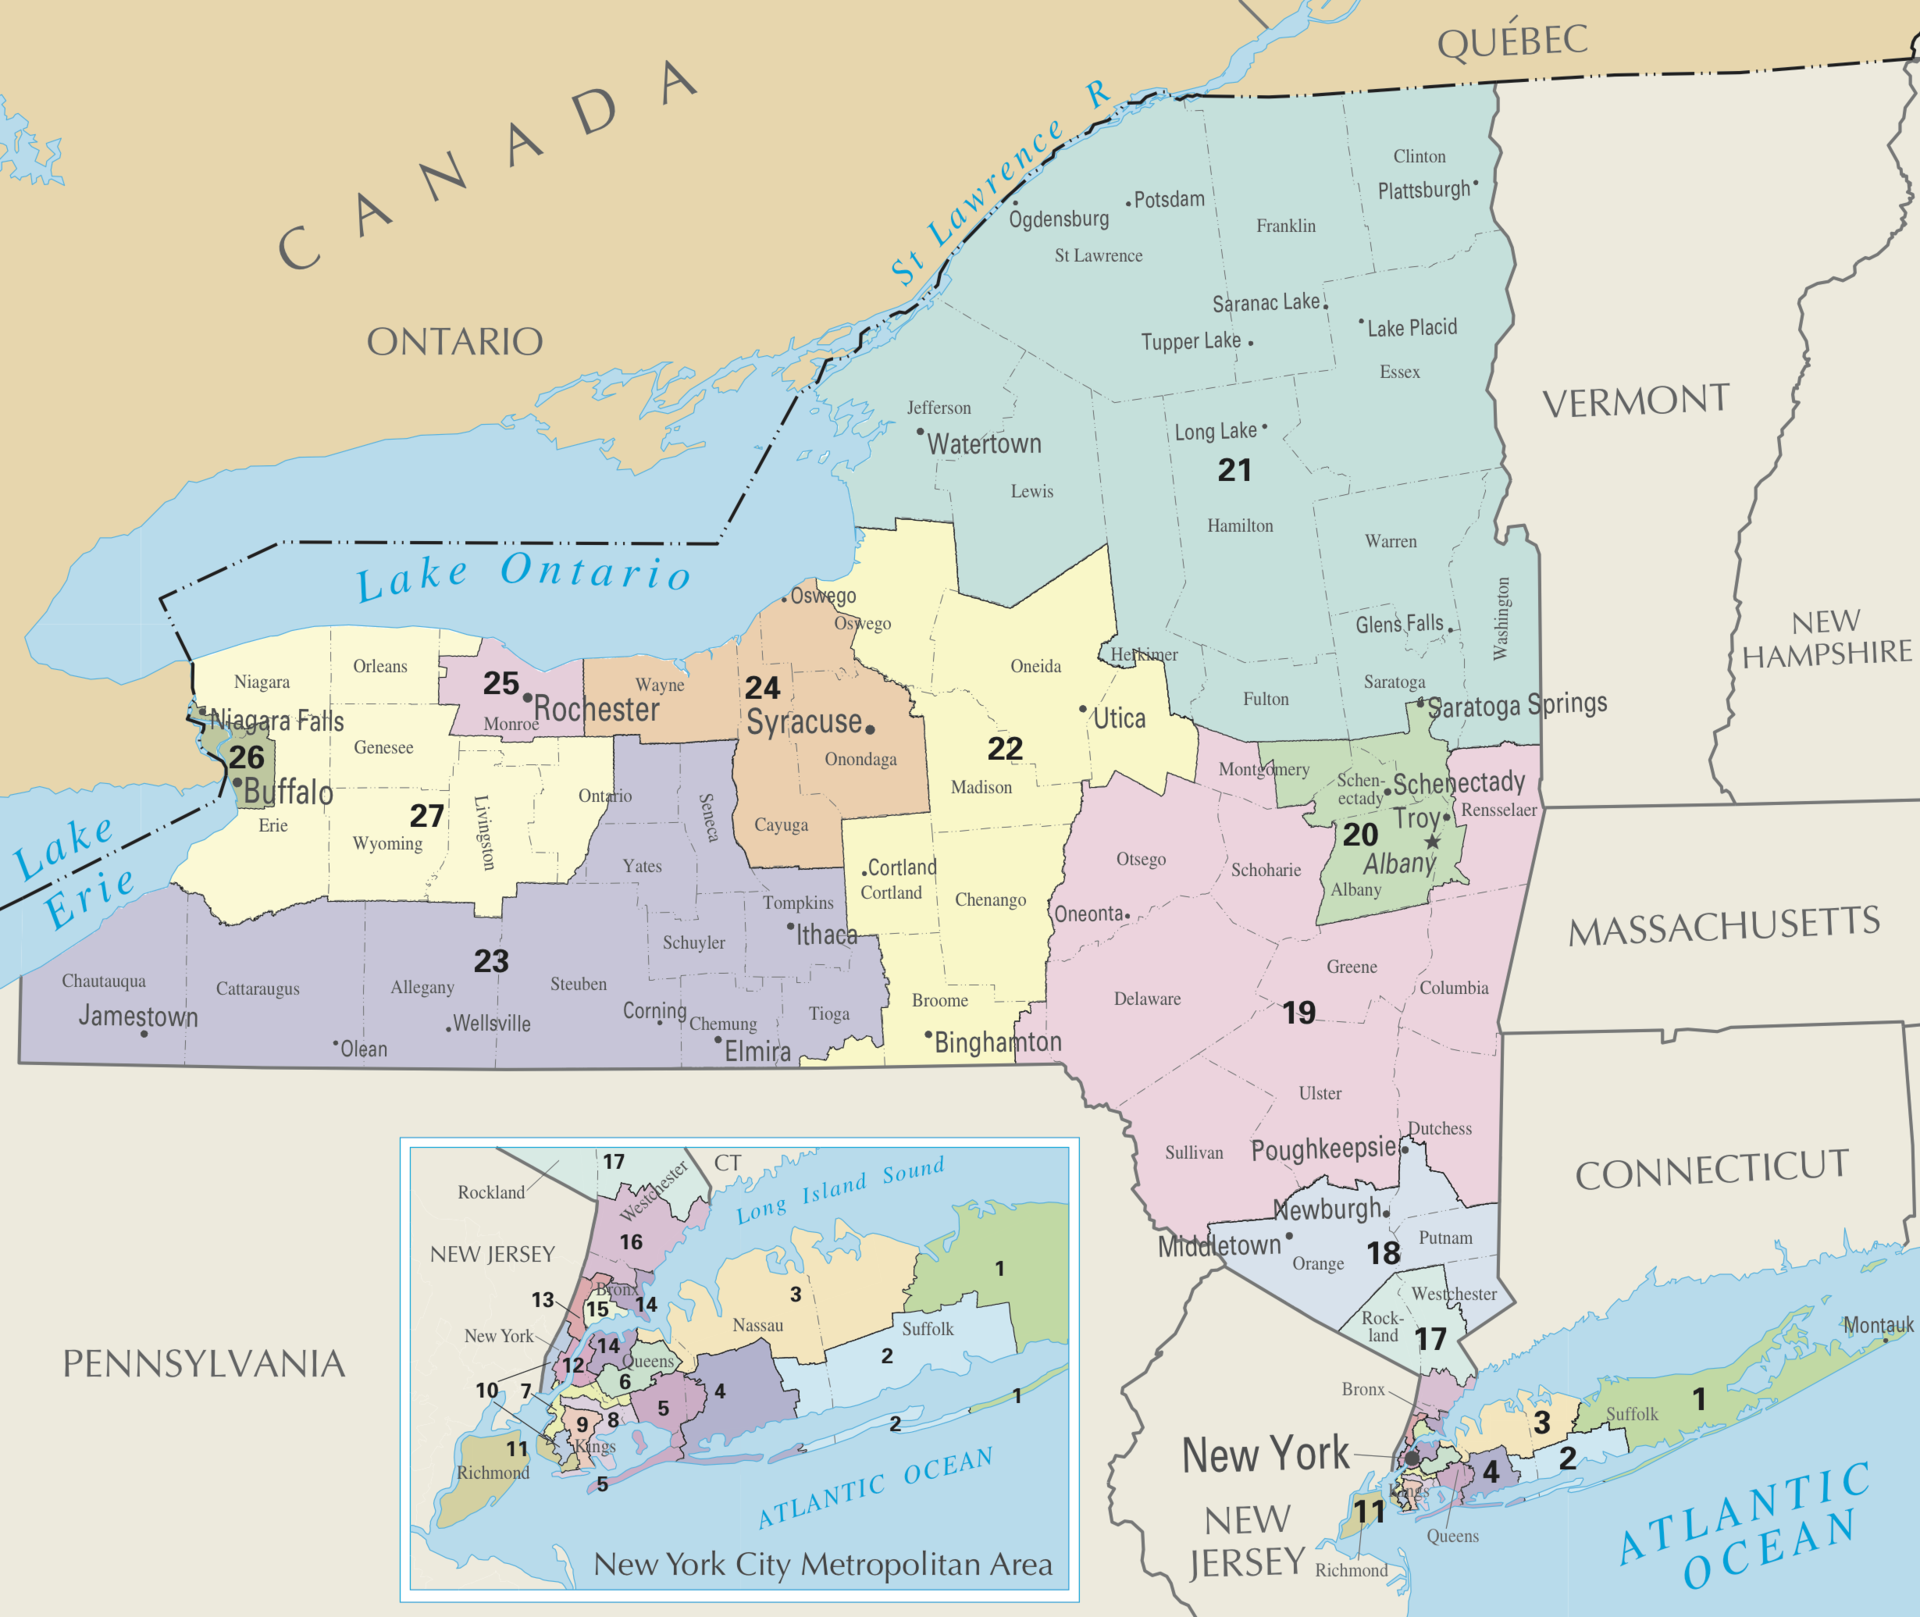 Uploaded Image: /vs-uploads/images/NYS Congressional District Map.png